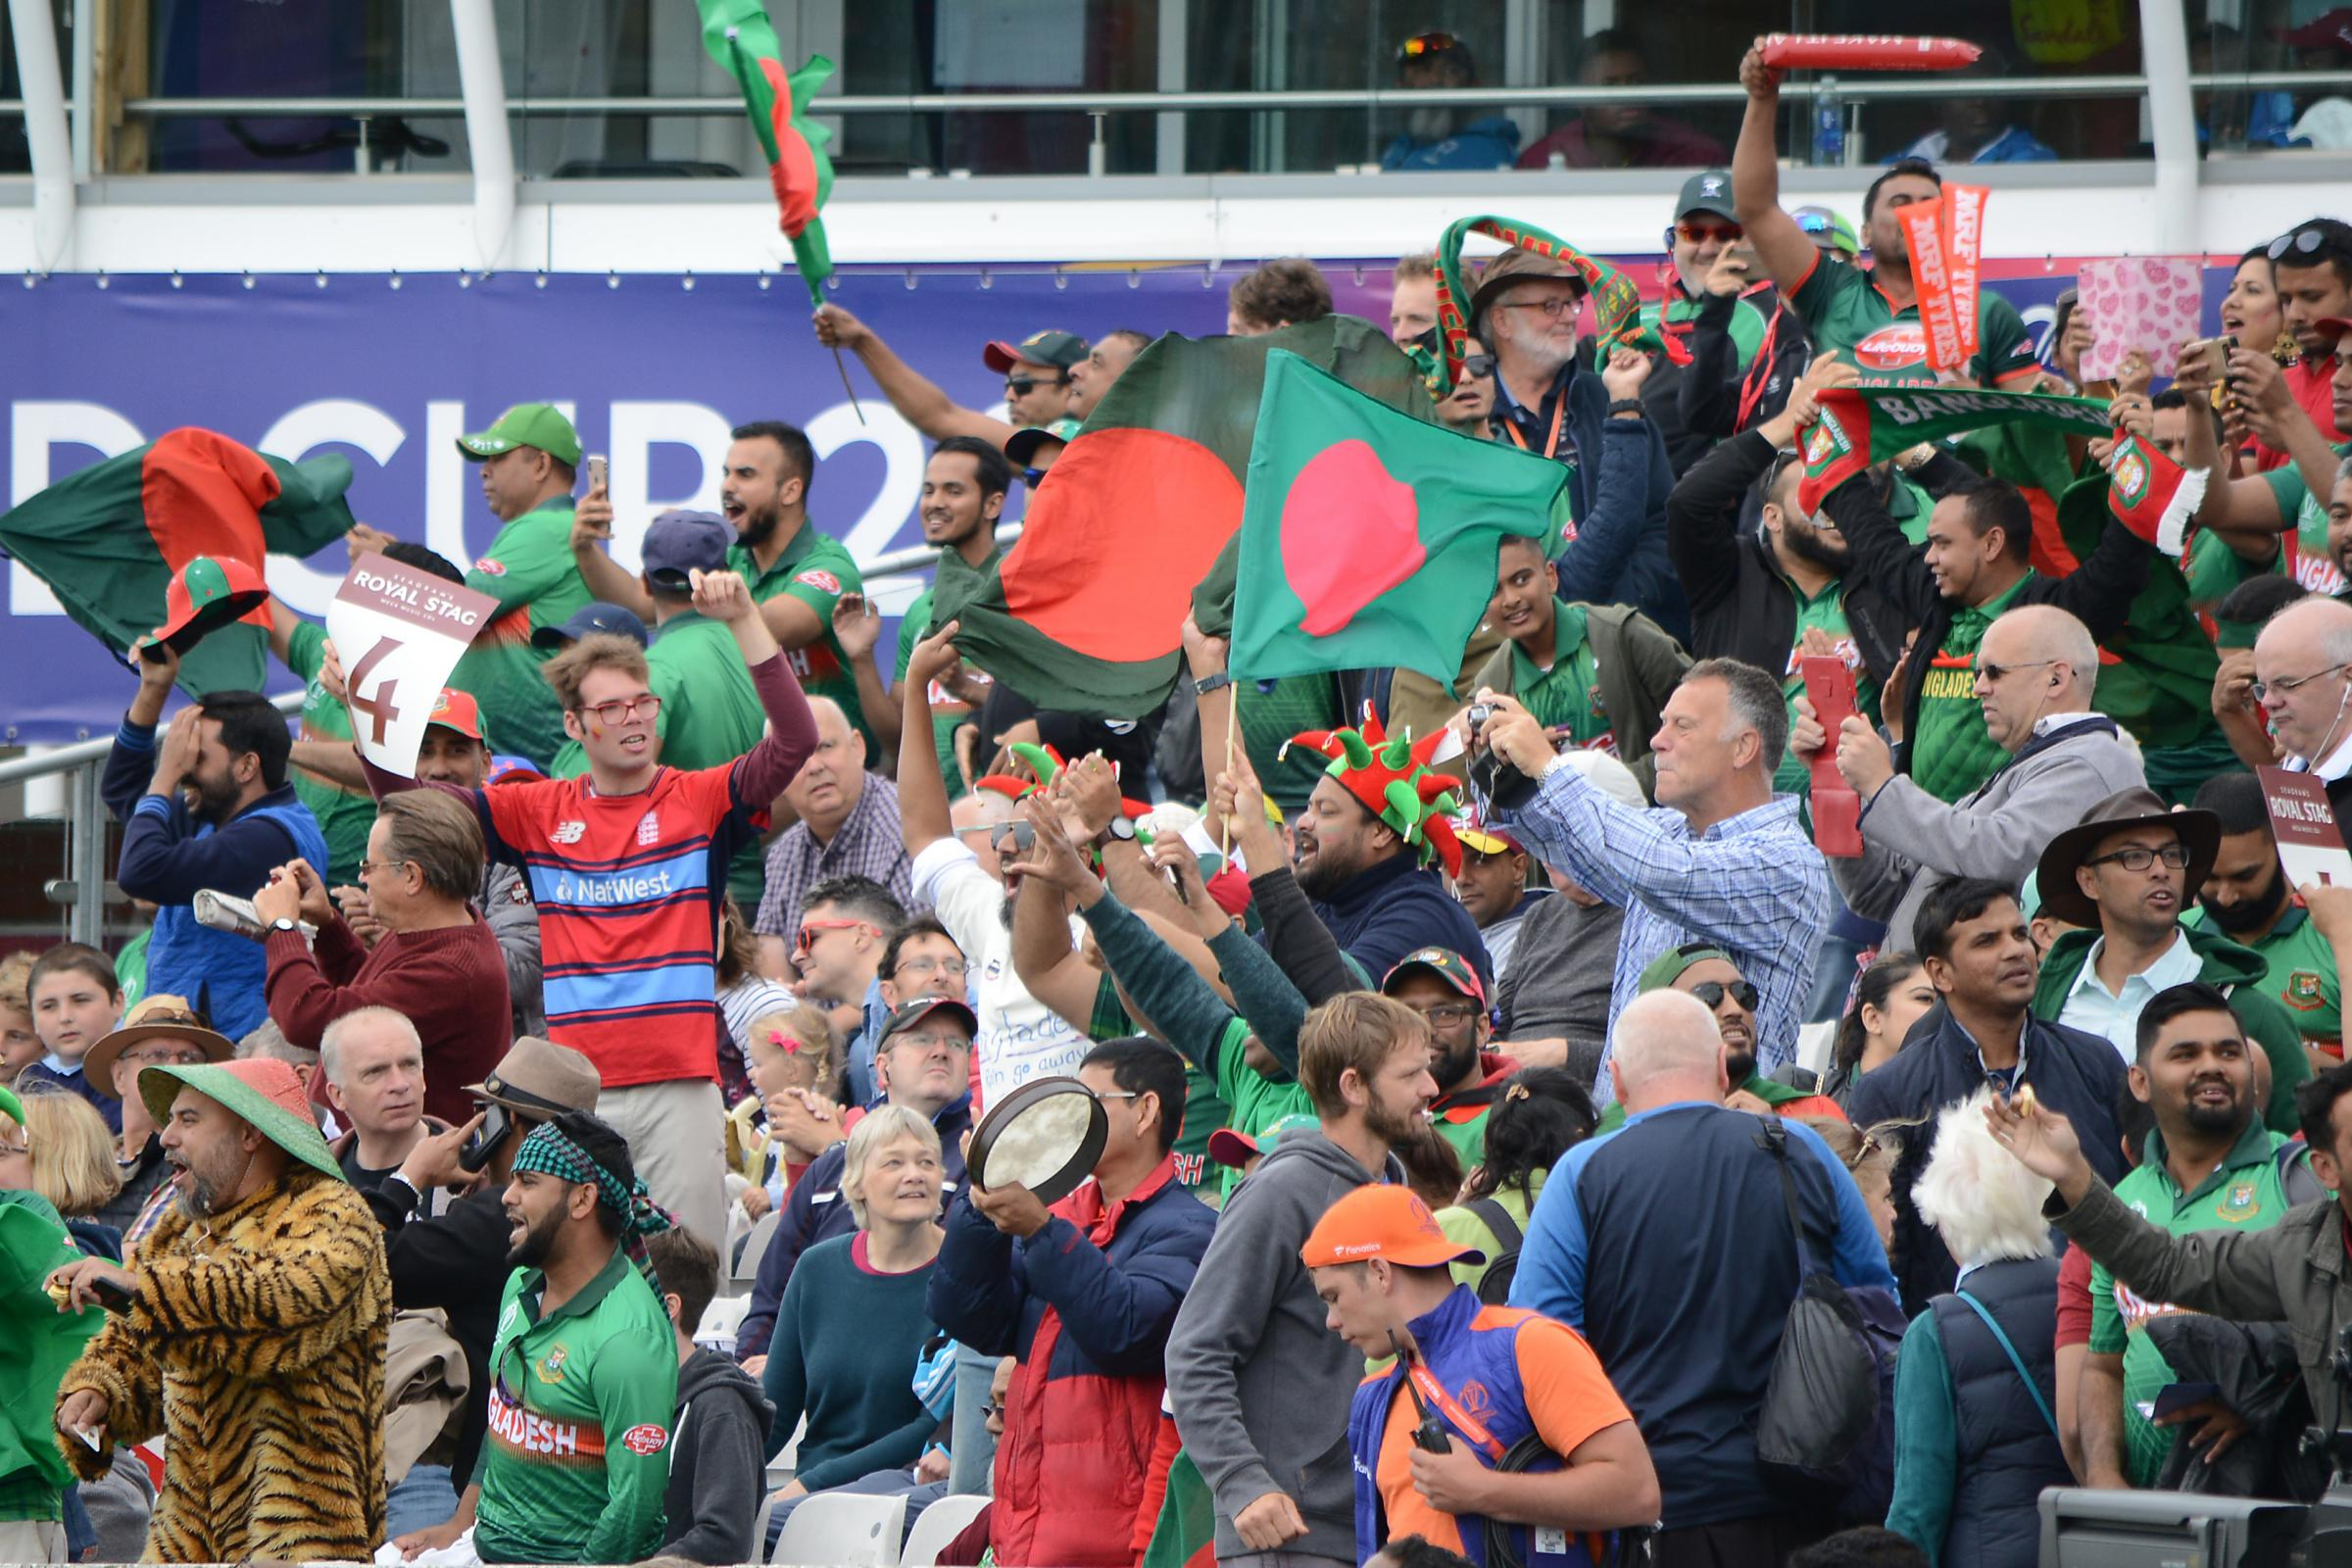 Cricket World Cup 2019: Pictures from Bangladesh v West Indies in Taunton